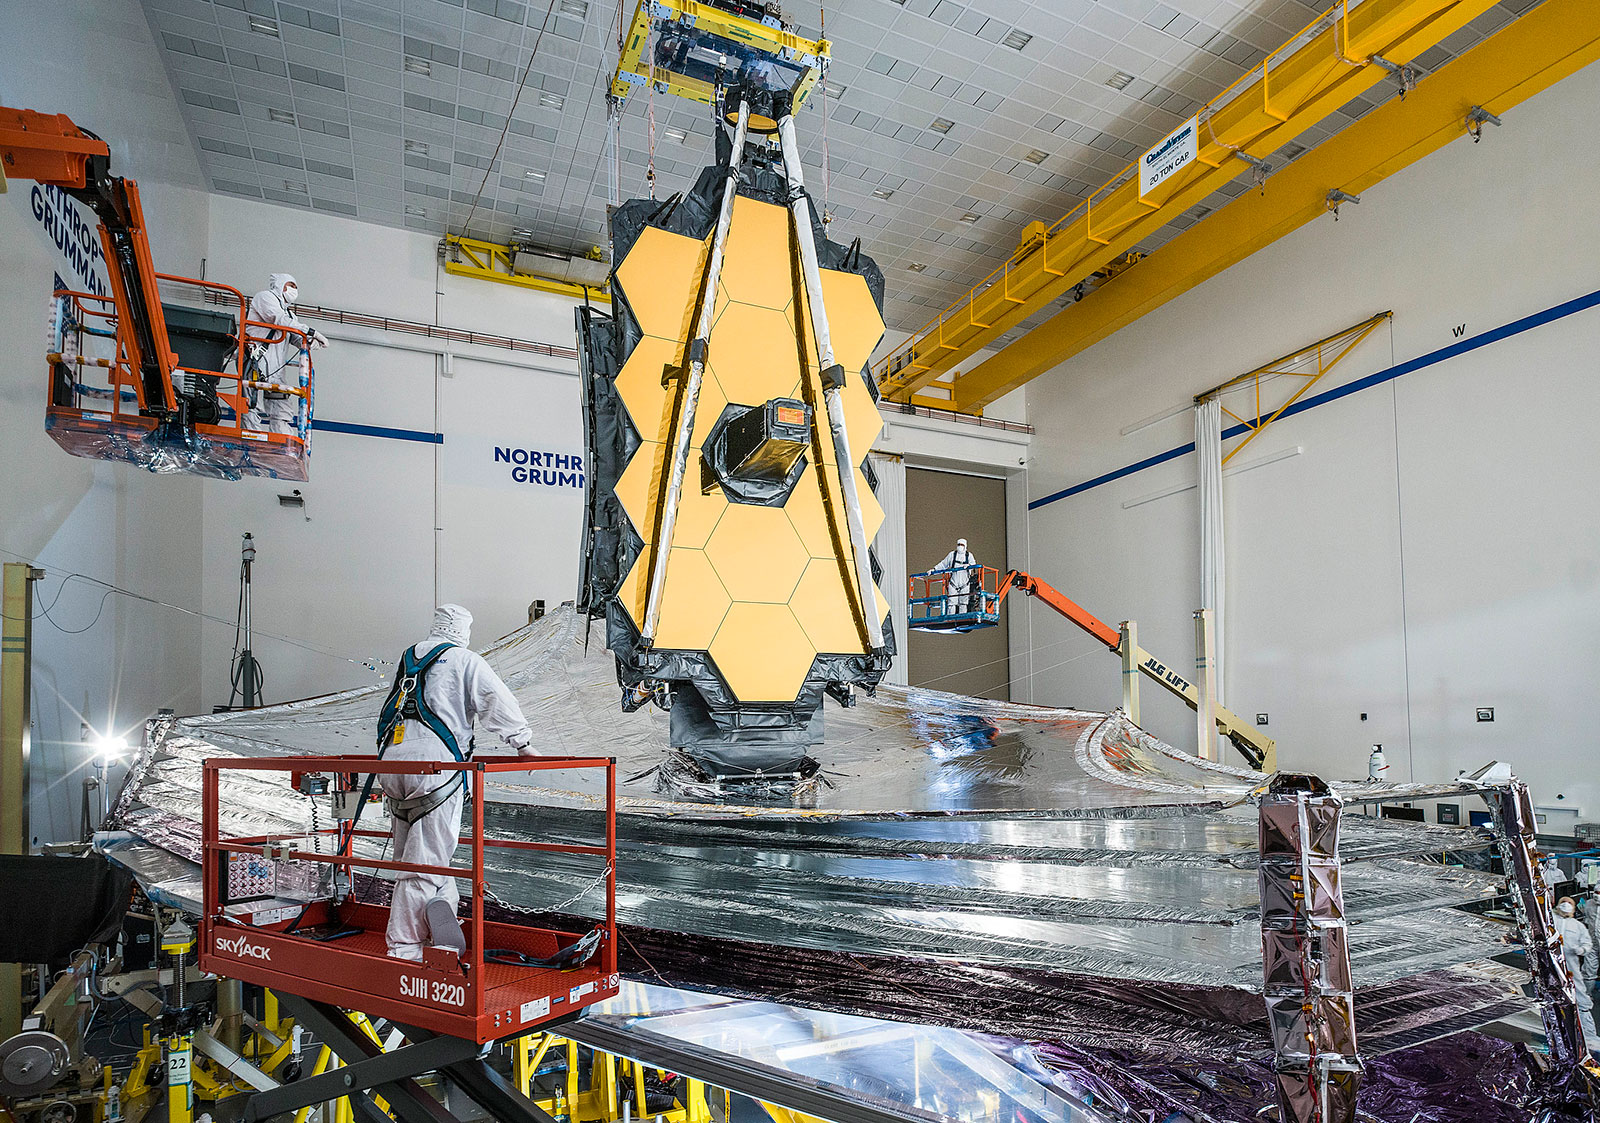 The James Webb Space Telescope (JWST) undergoing tests on Earth before departing for space.